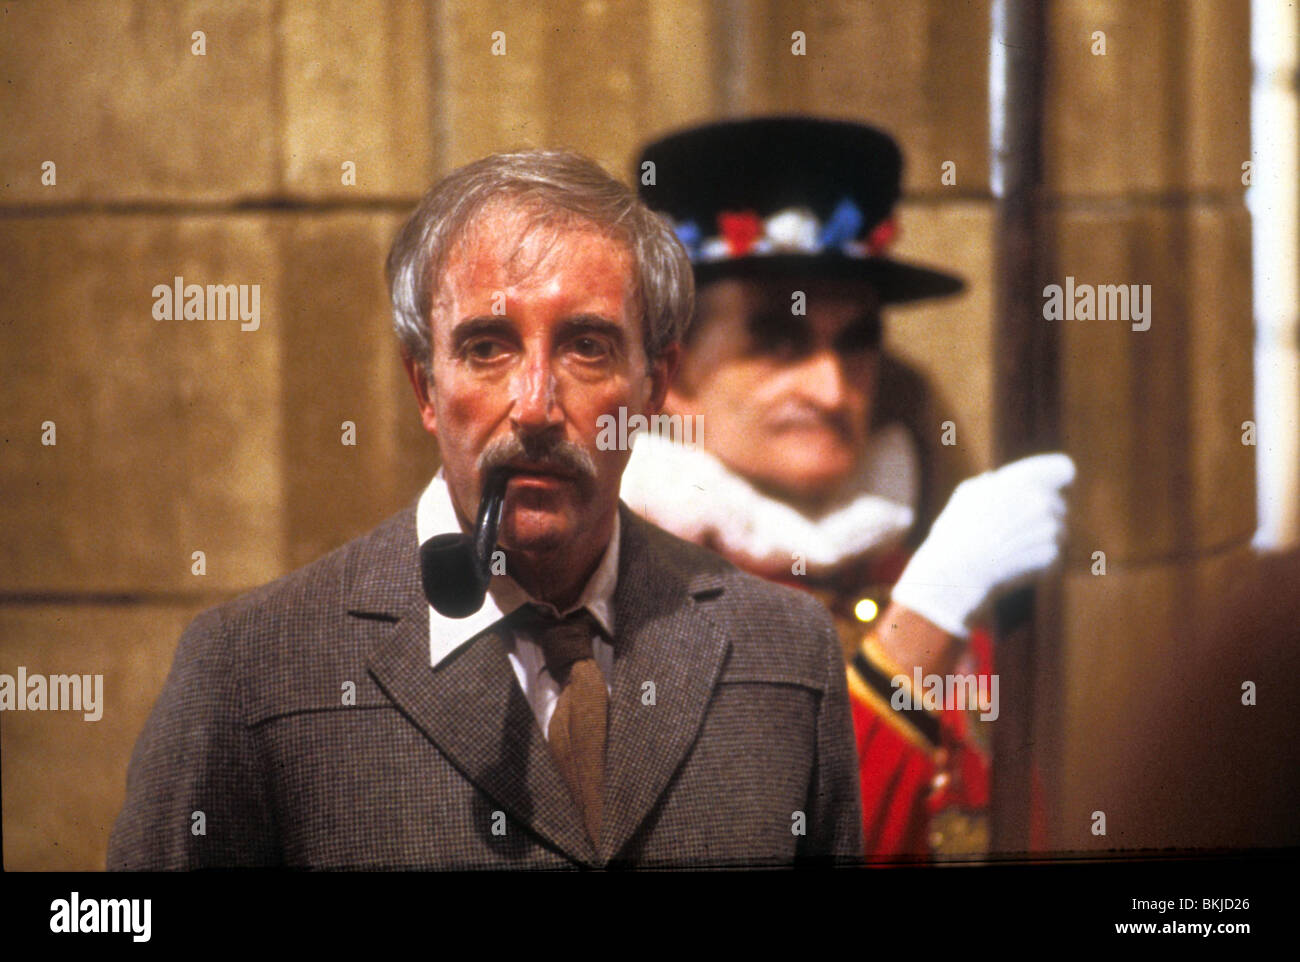 THE FIENDISH PLOT OF DR FU MANCHU (1980) PETER SELLERS FPDF 002